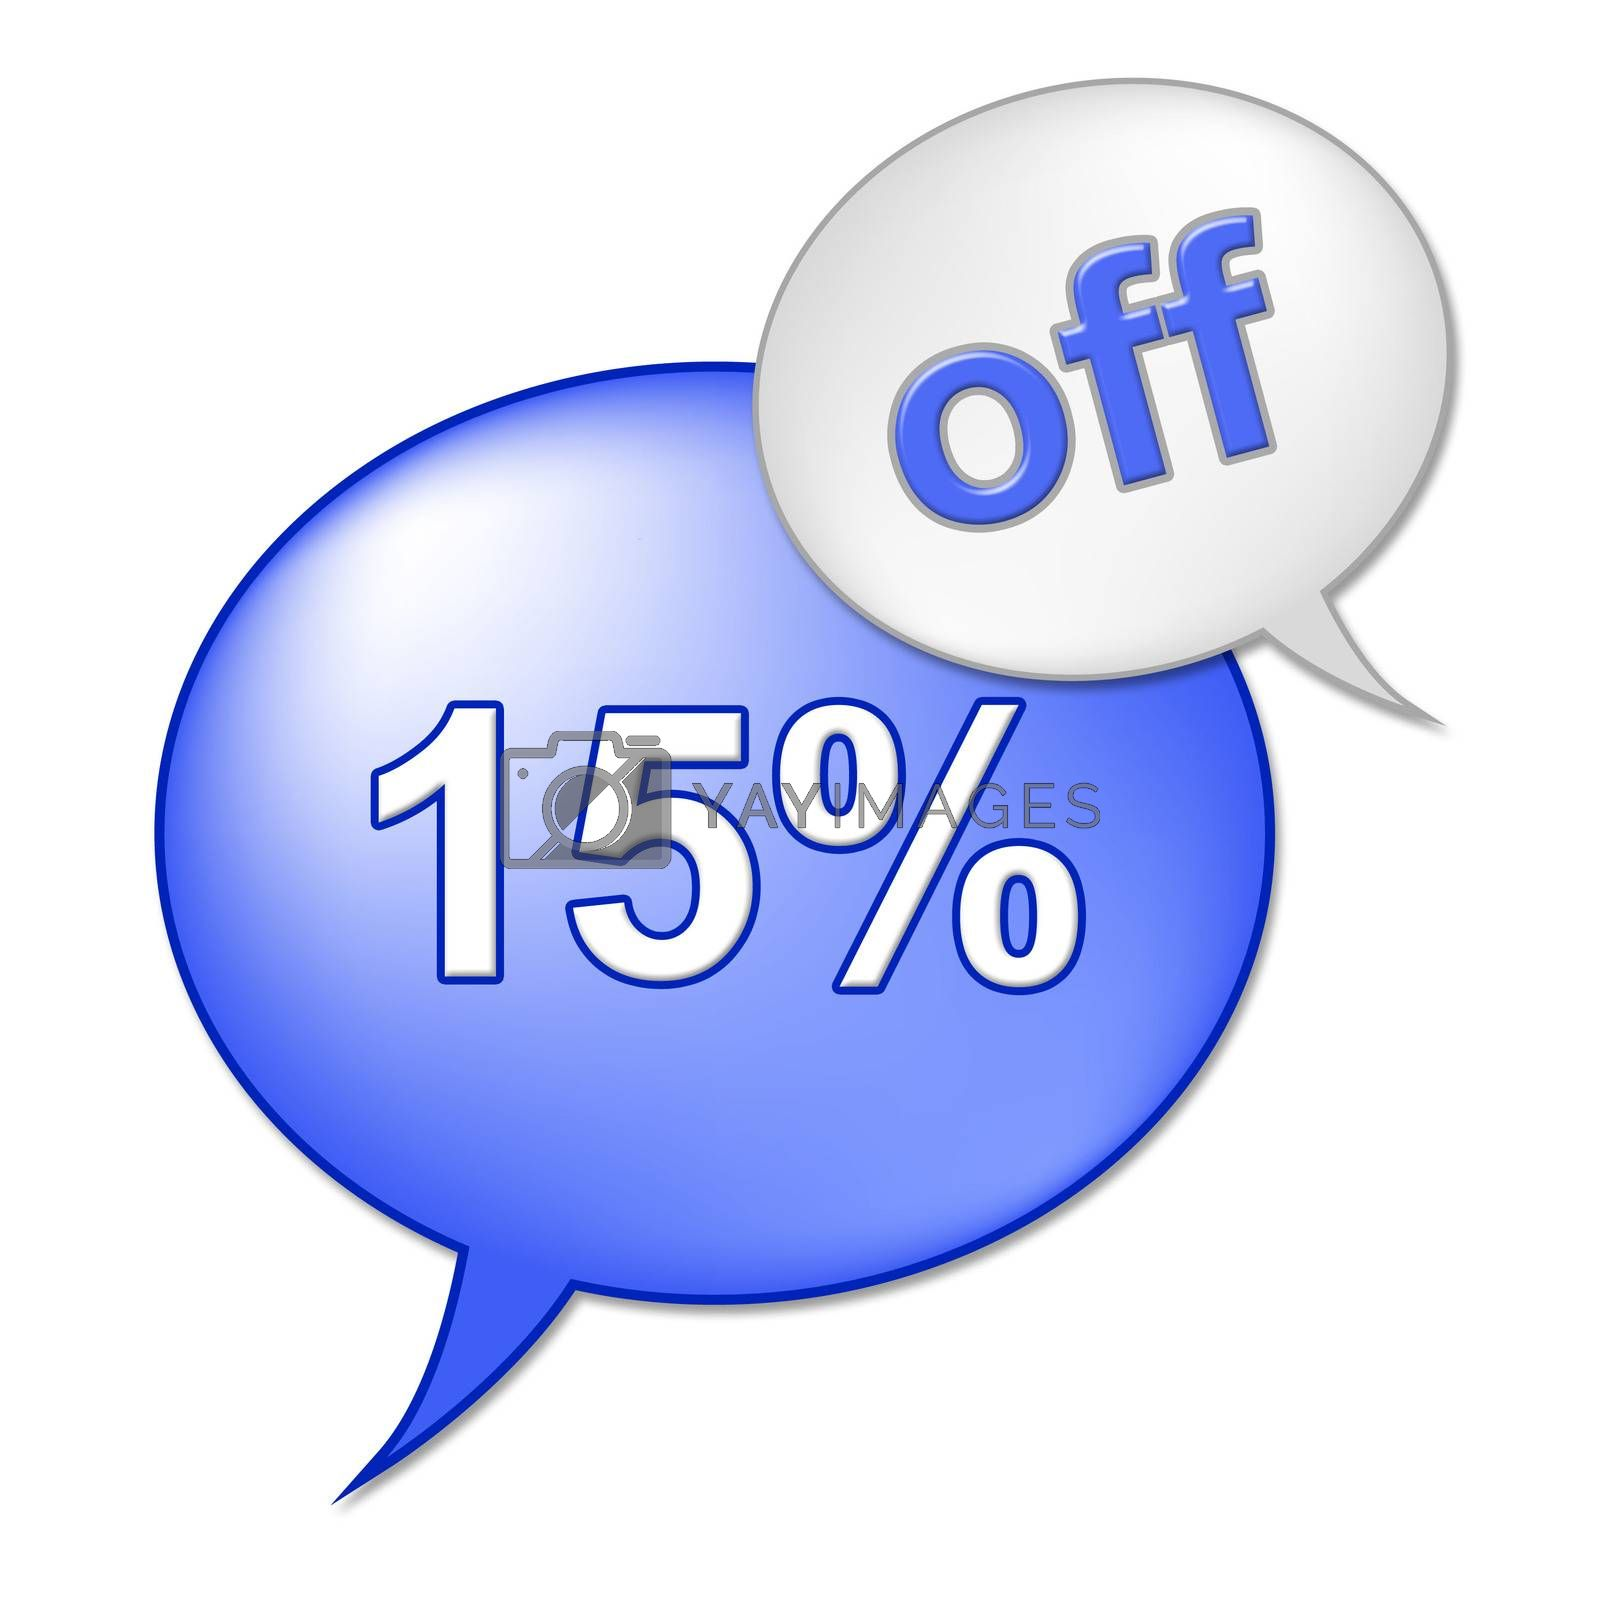 Fifteen Percent Off Represents Clearance Cheap And Reduction by stuartmiles